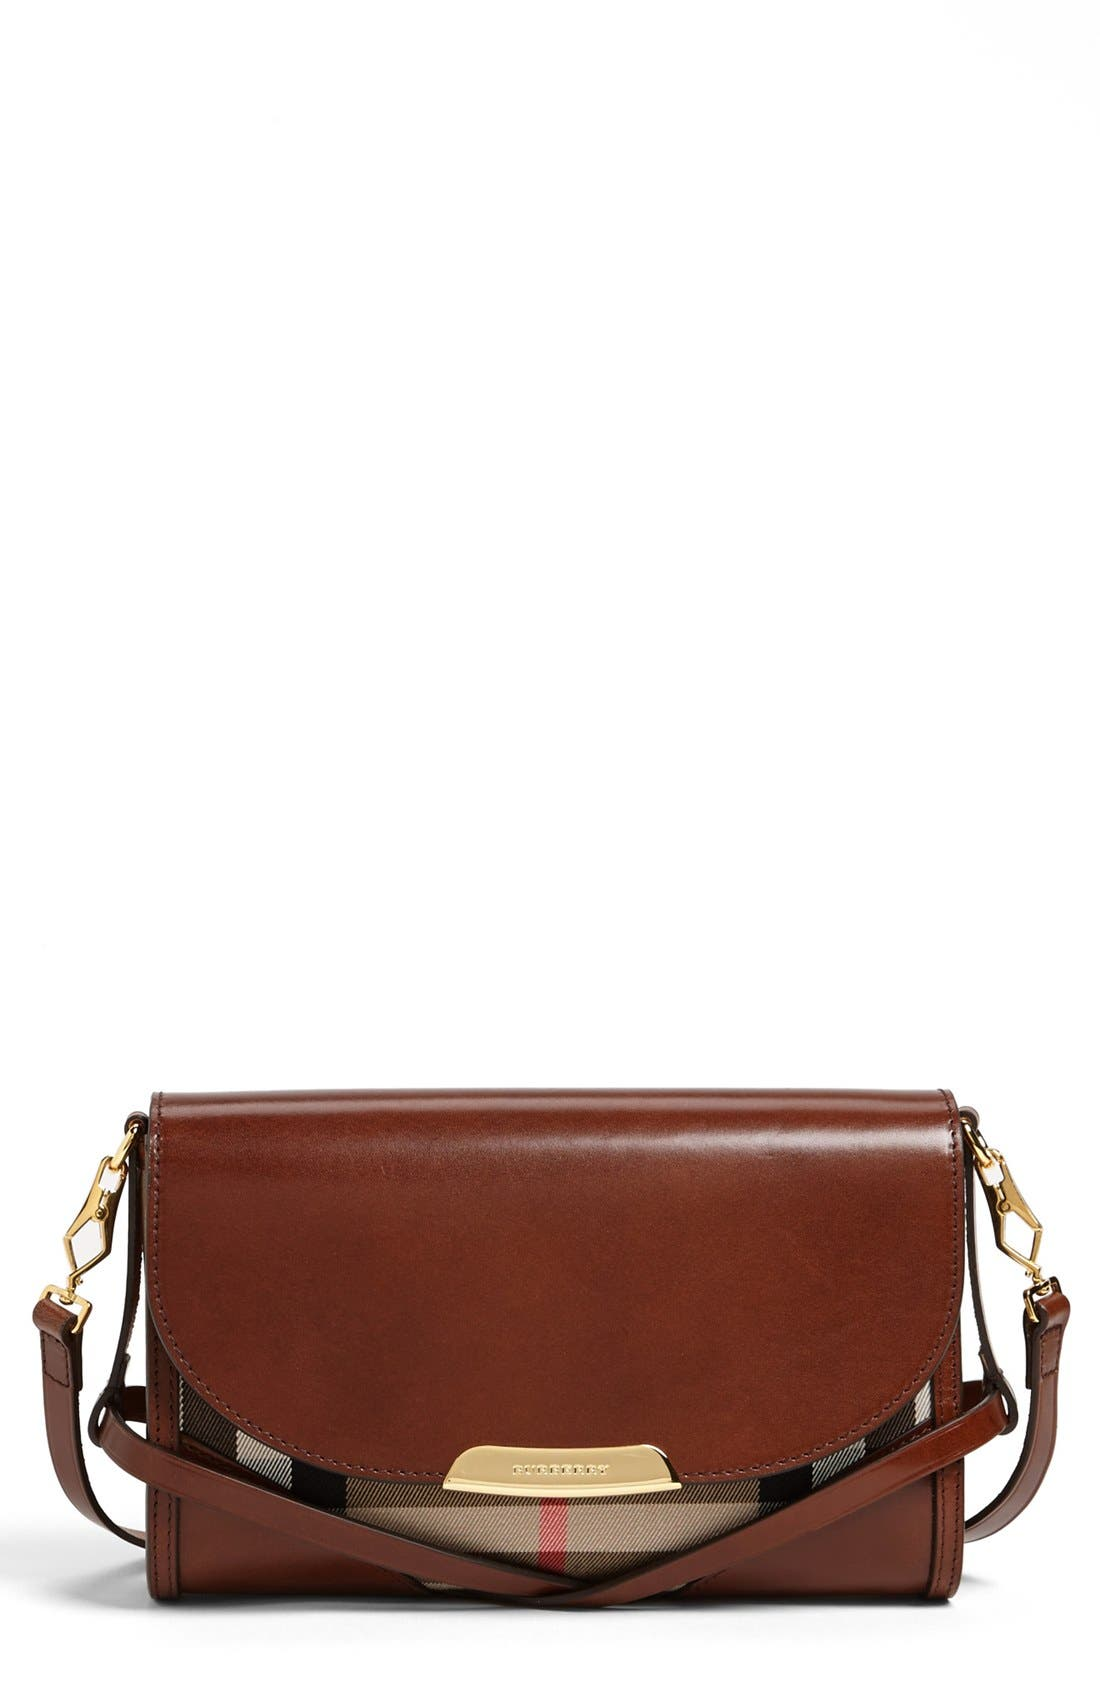 Alternate Image 1 Selected - Burberry 'House Check' Crossbody Bag